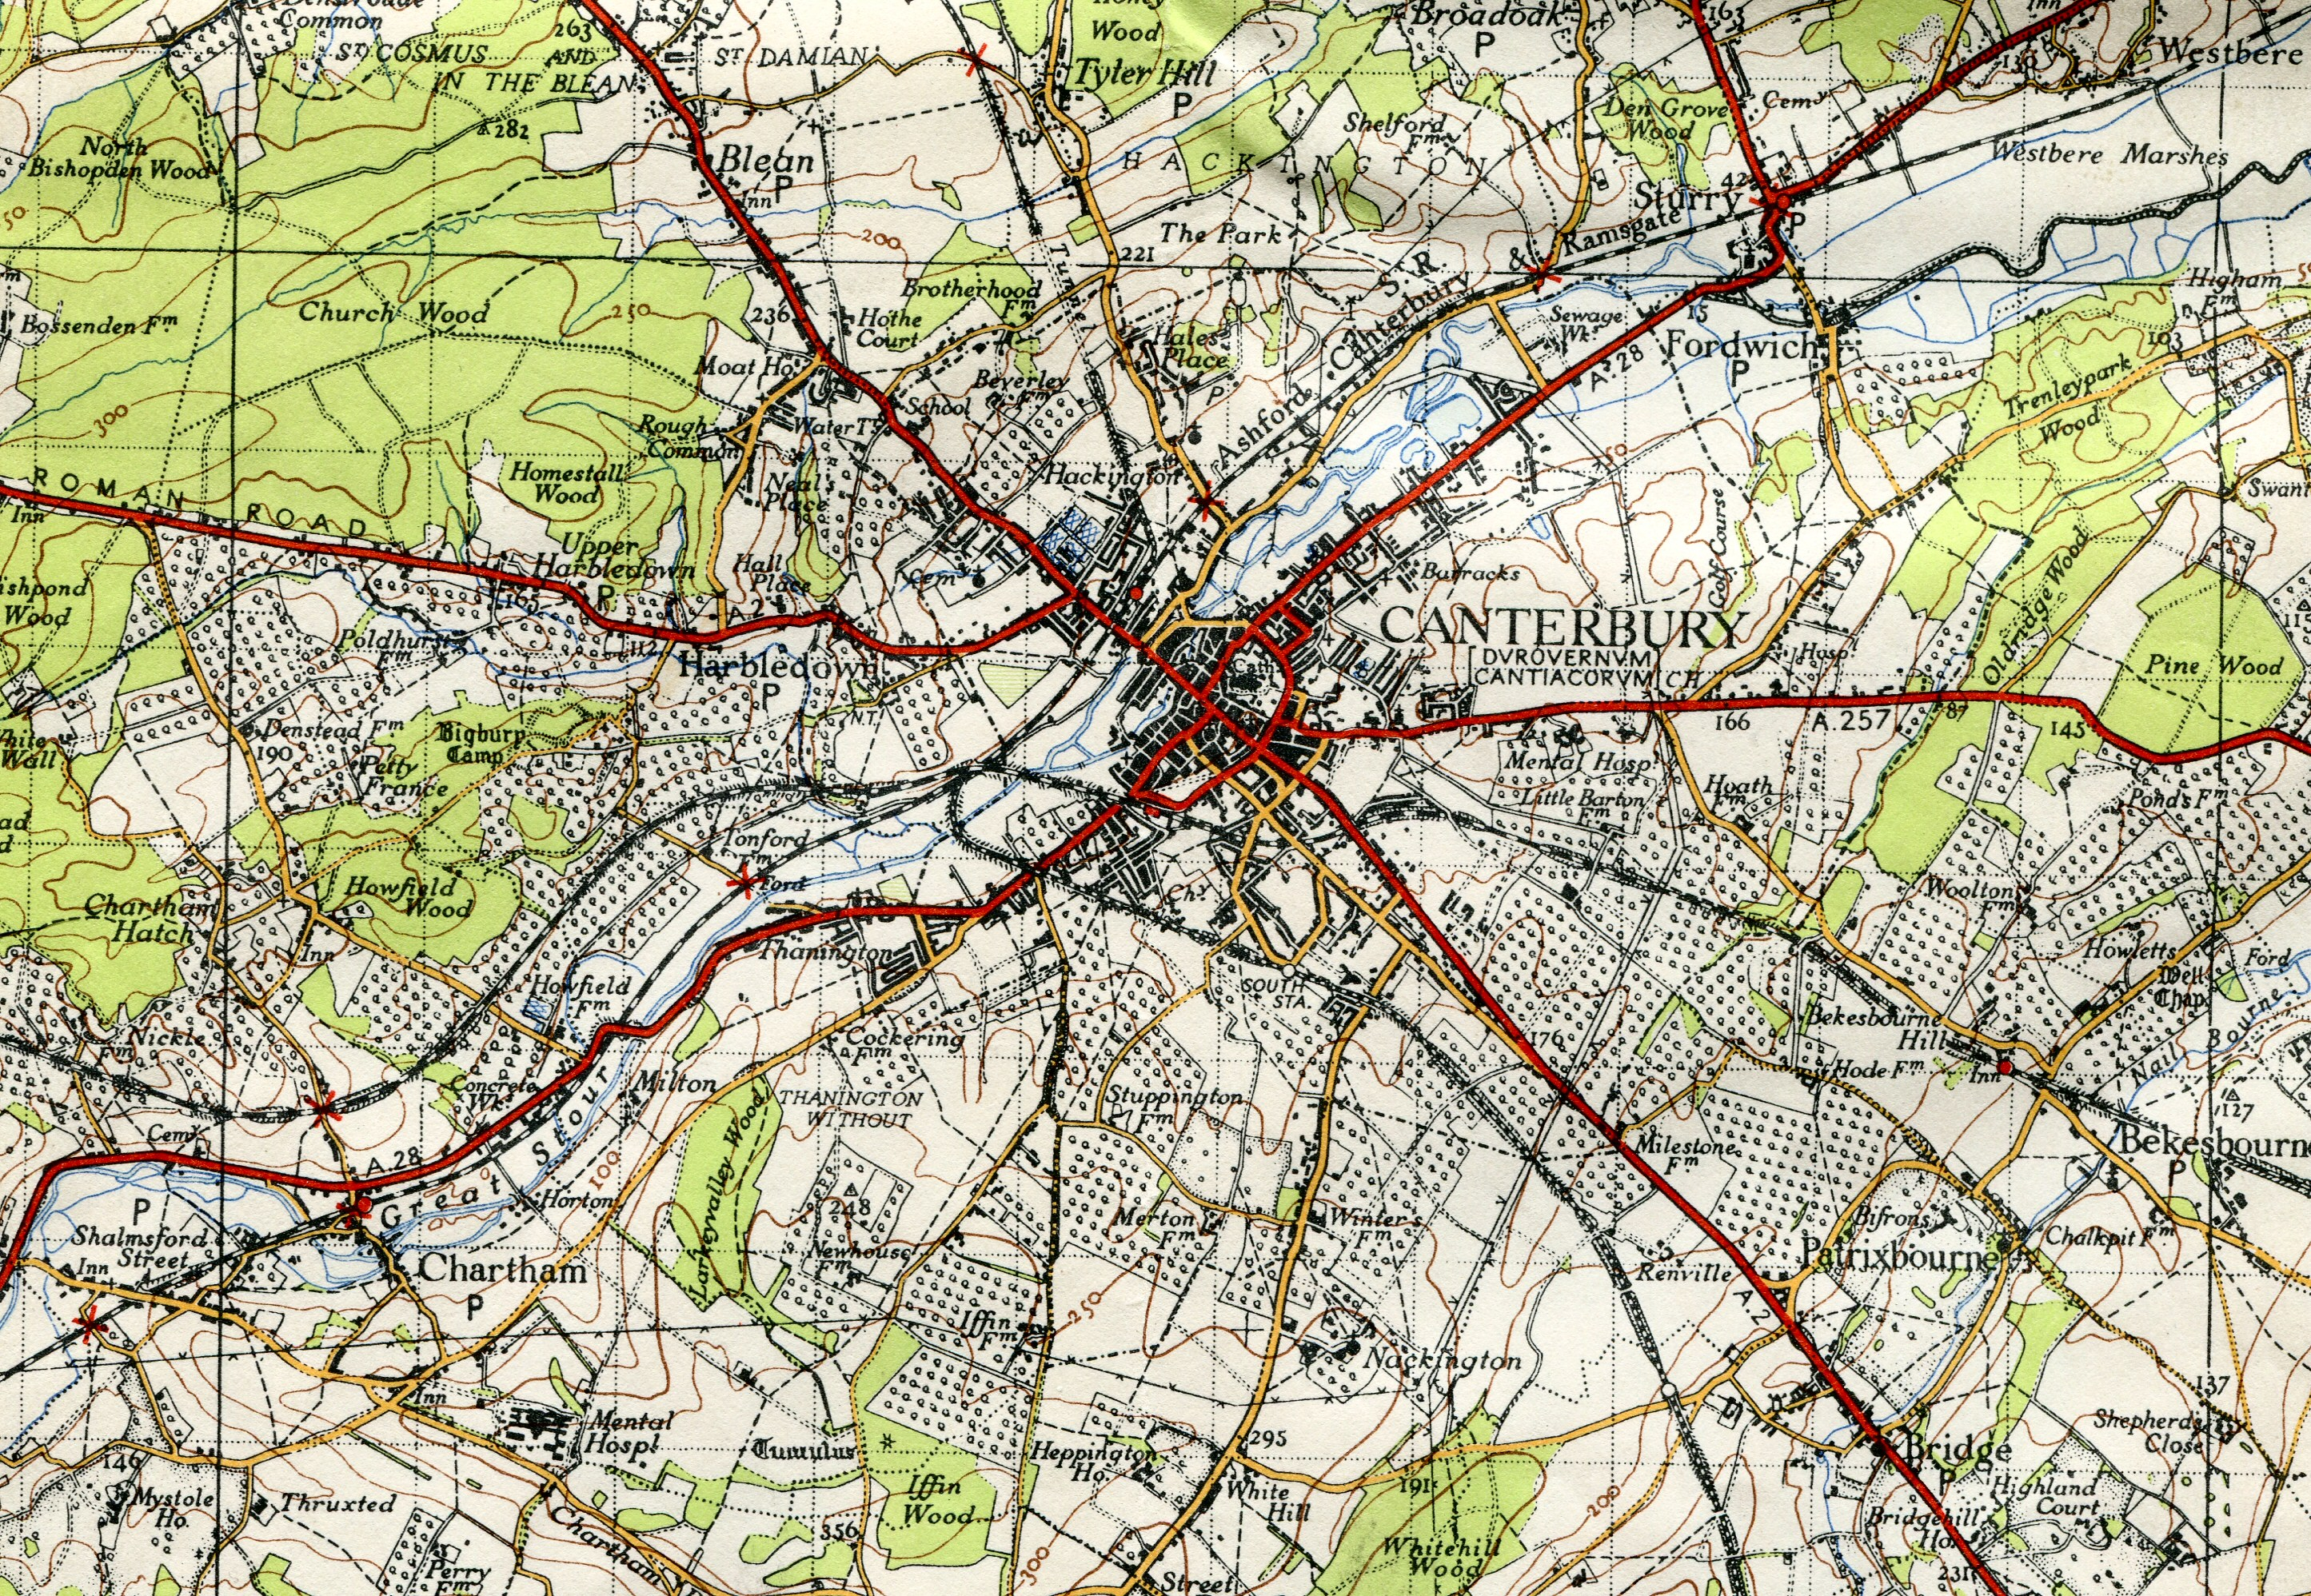 FileCanterbury Orchards 1945 OS Map 171 detailjpg Wikimedia Commons